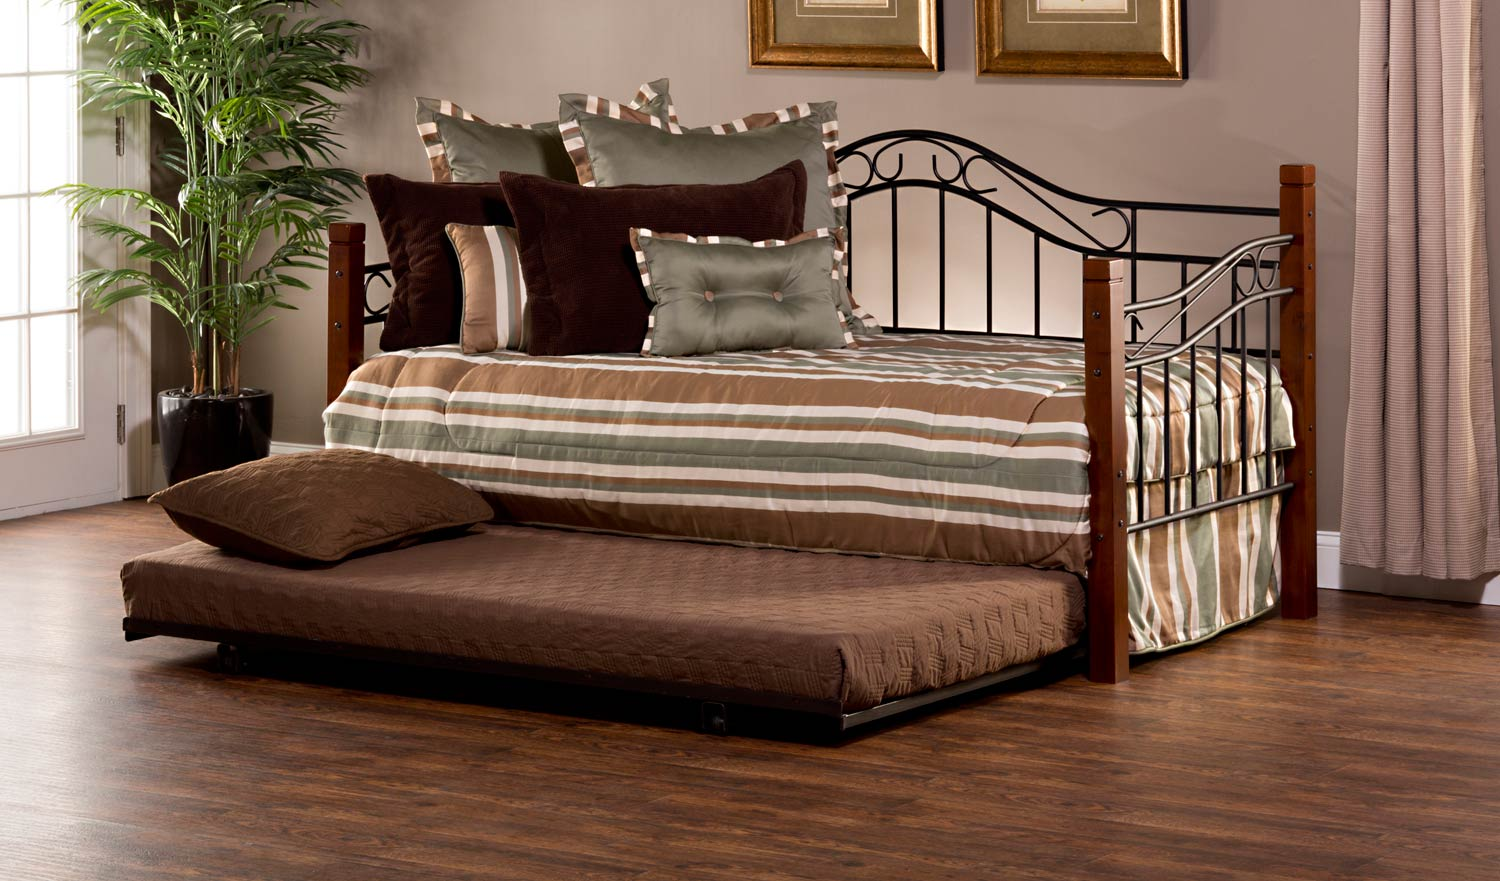 Hillsdale Matson Daybed With Suspension Deck And Trundle